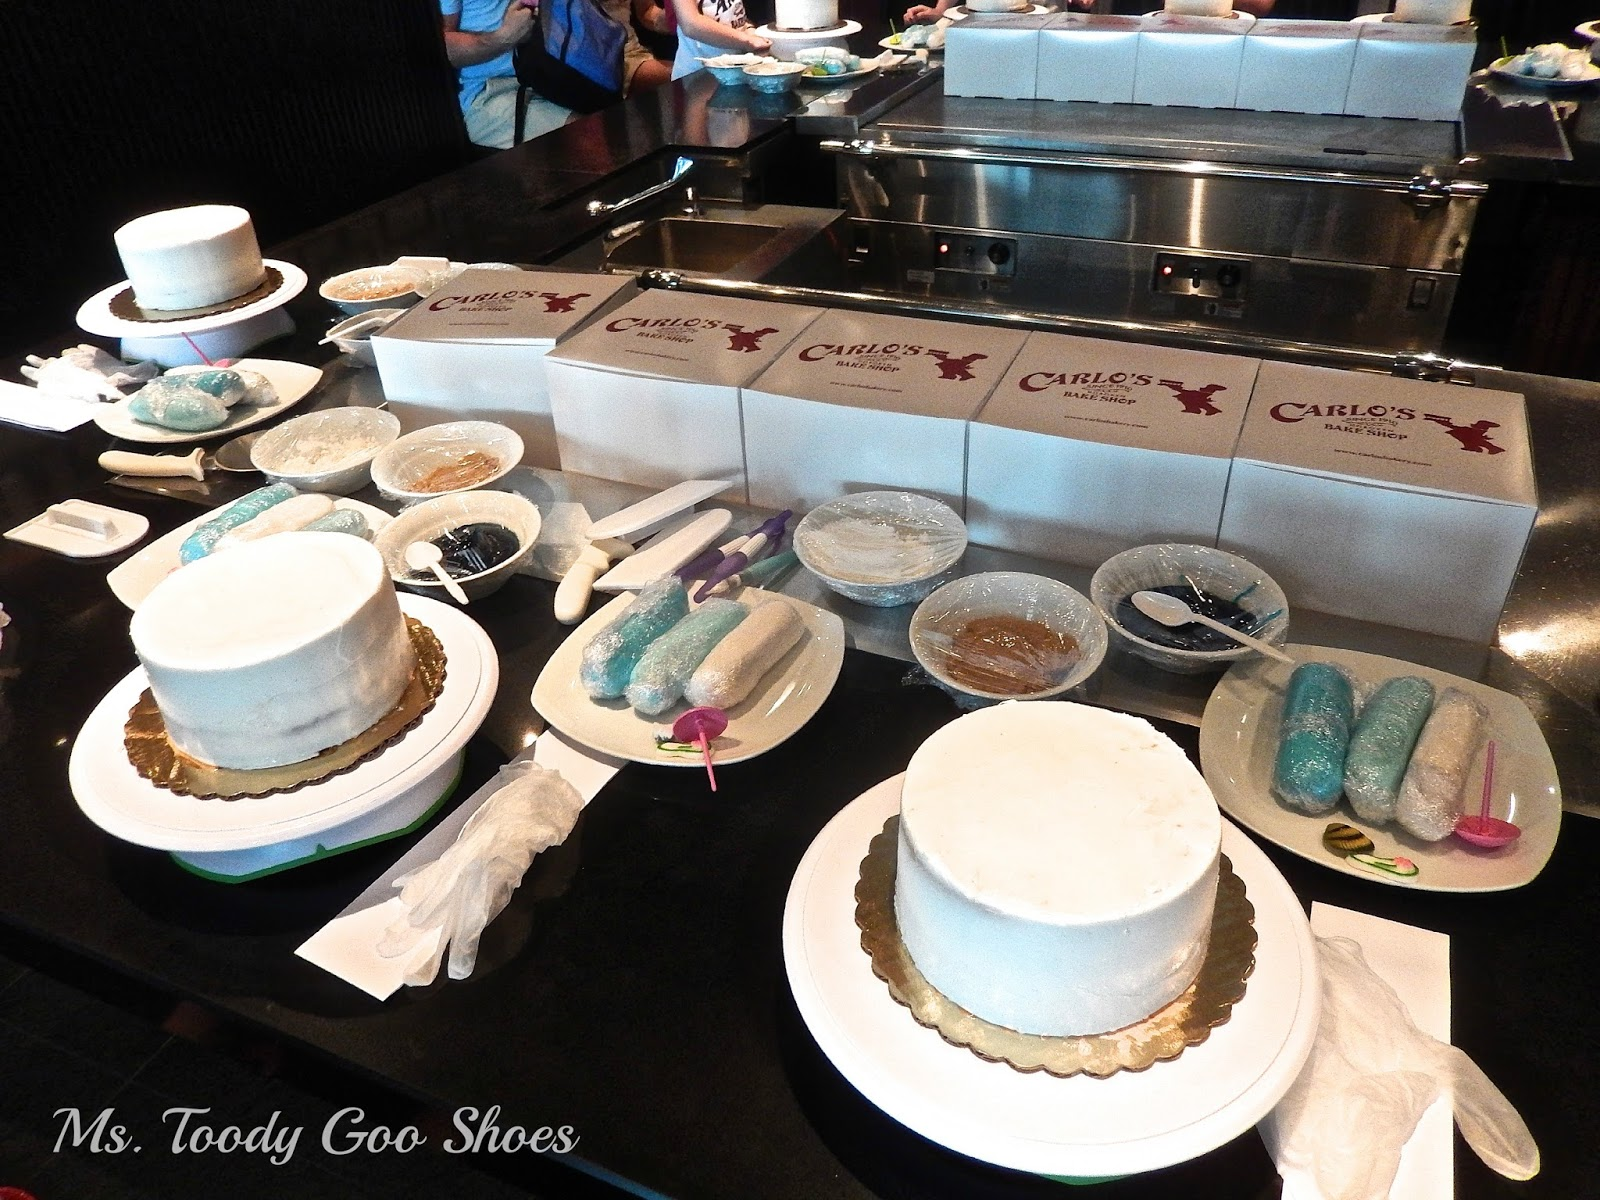 Carlo's Bake Shop Cake Decorating Class on Norwegian Breakaway Cruise Ship  --- Ms. Toody Goo Shoes